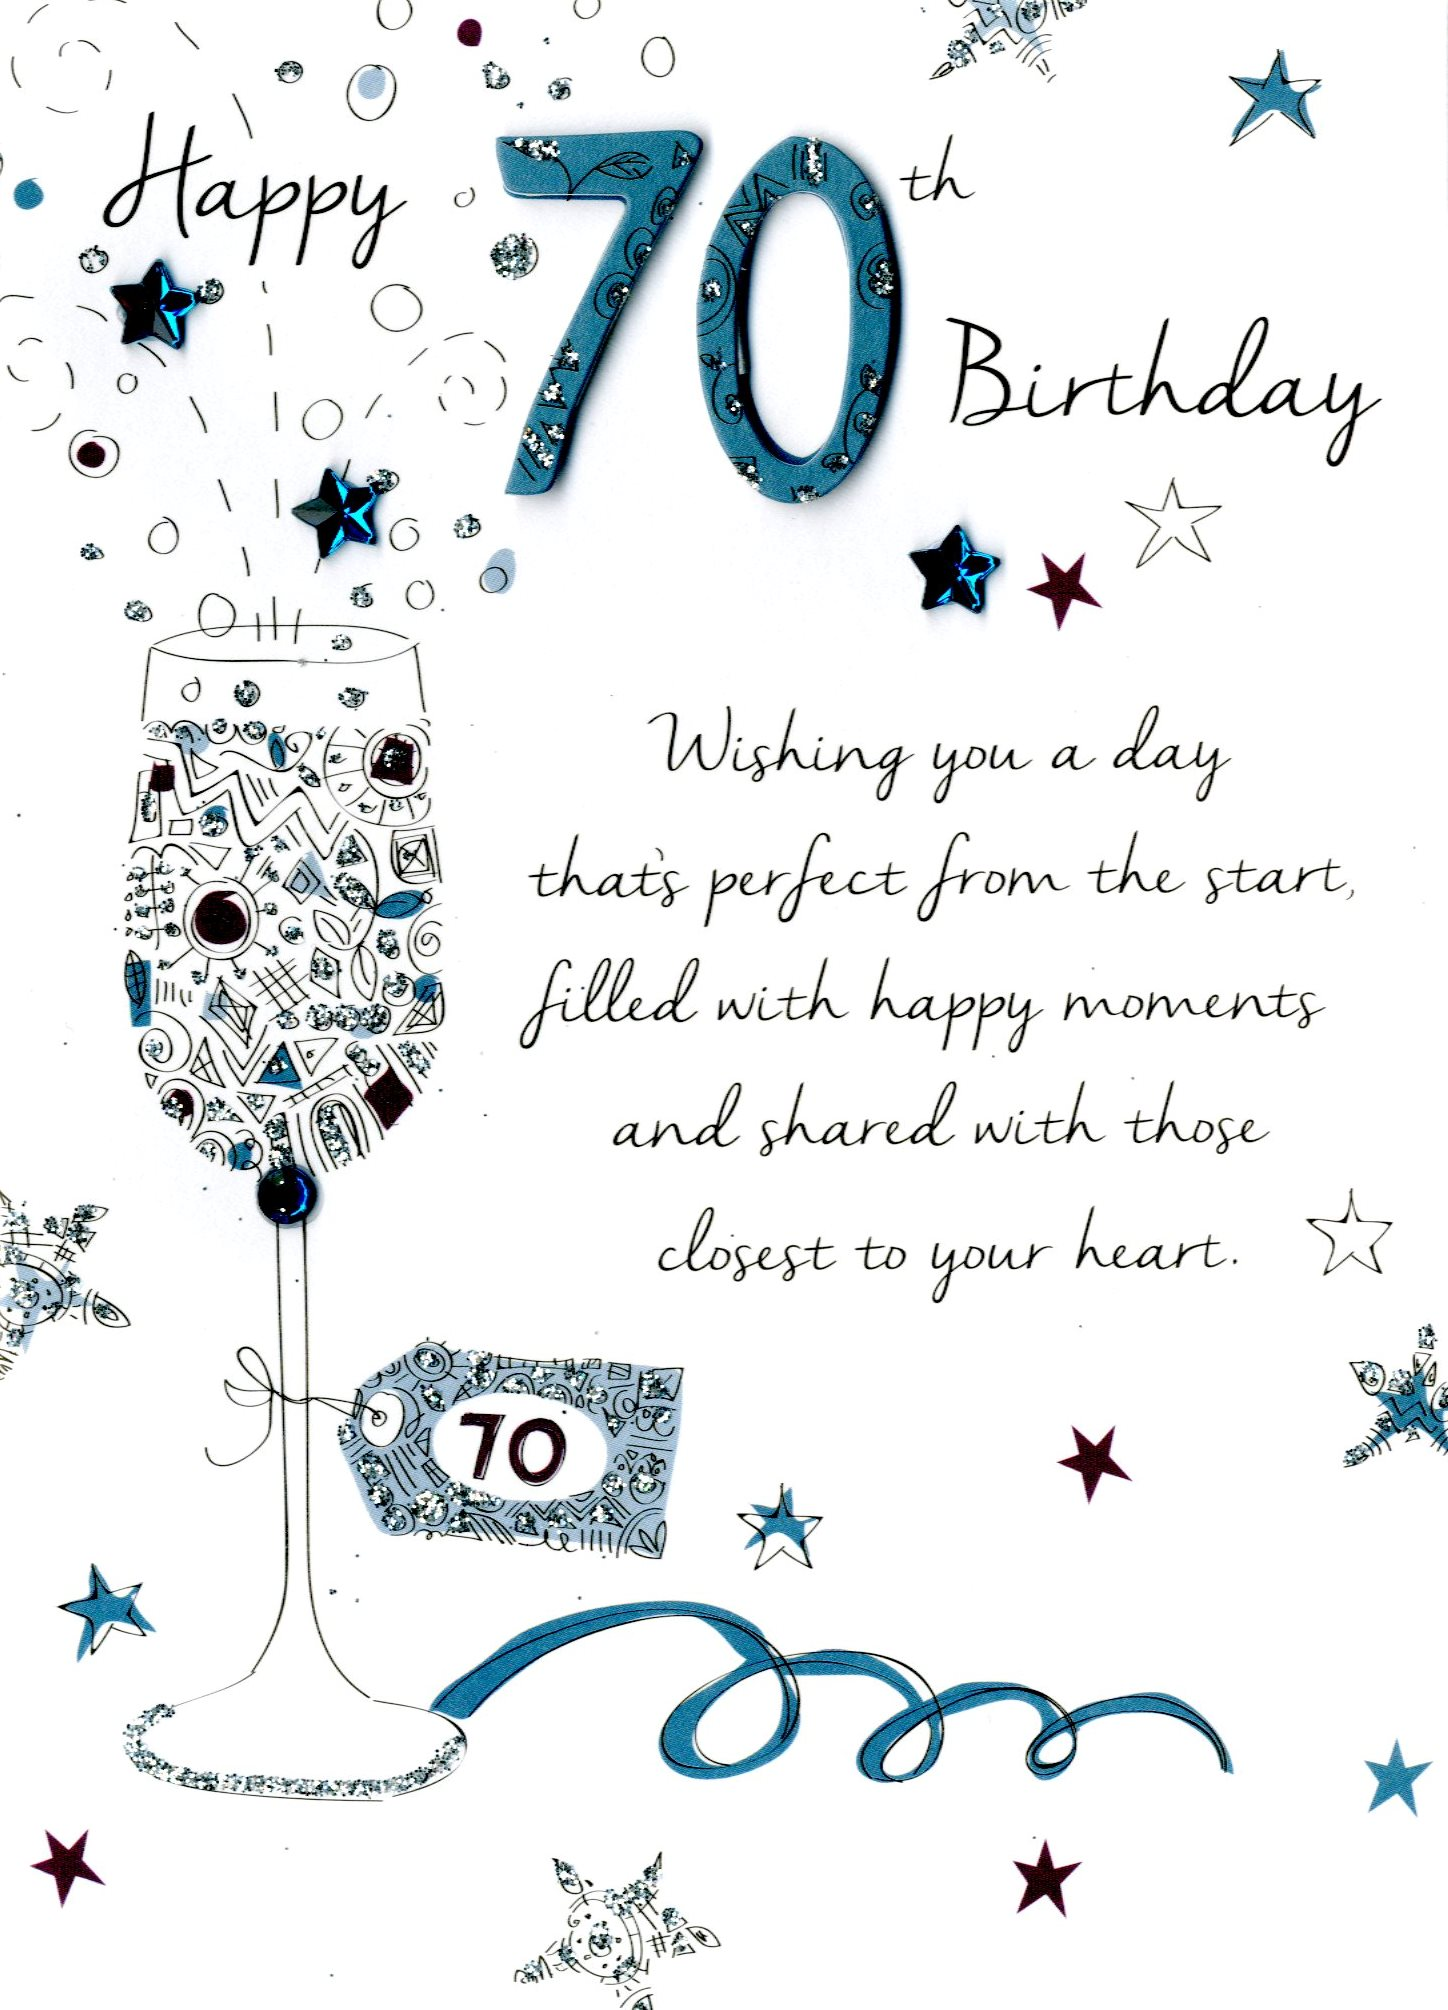 birthday wishes for 70th birthday card ; JT033